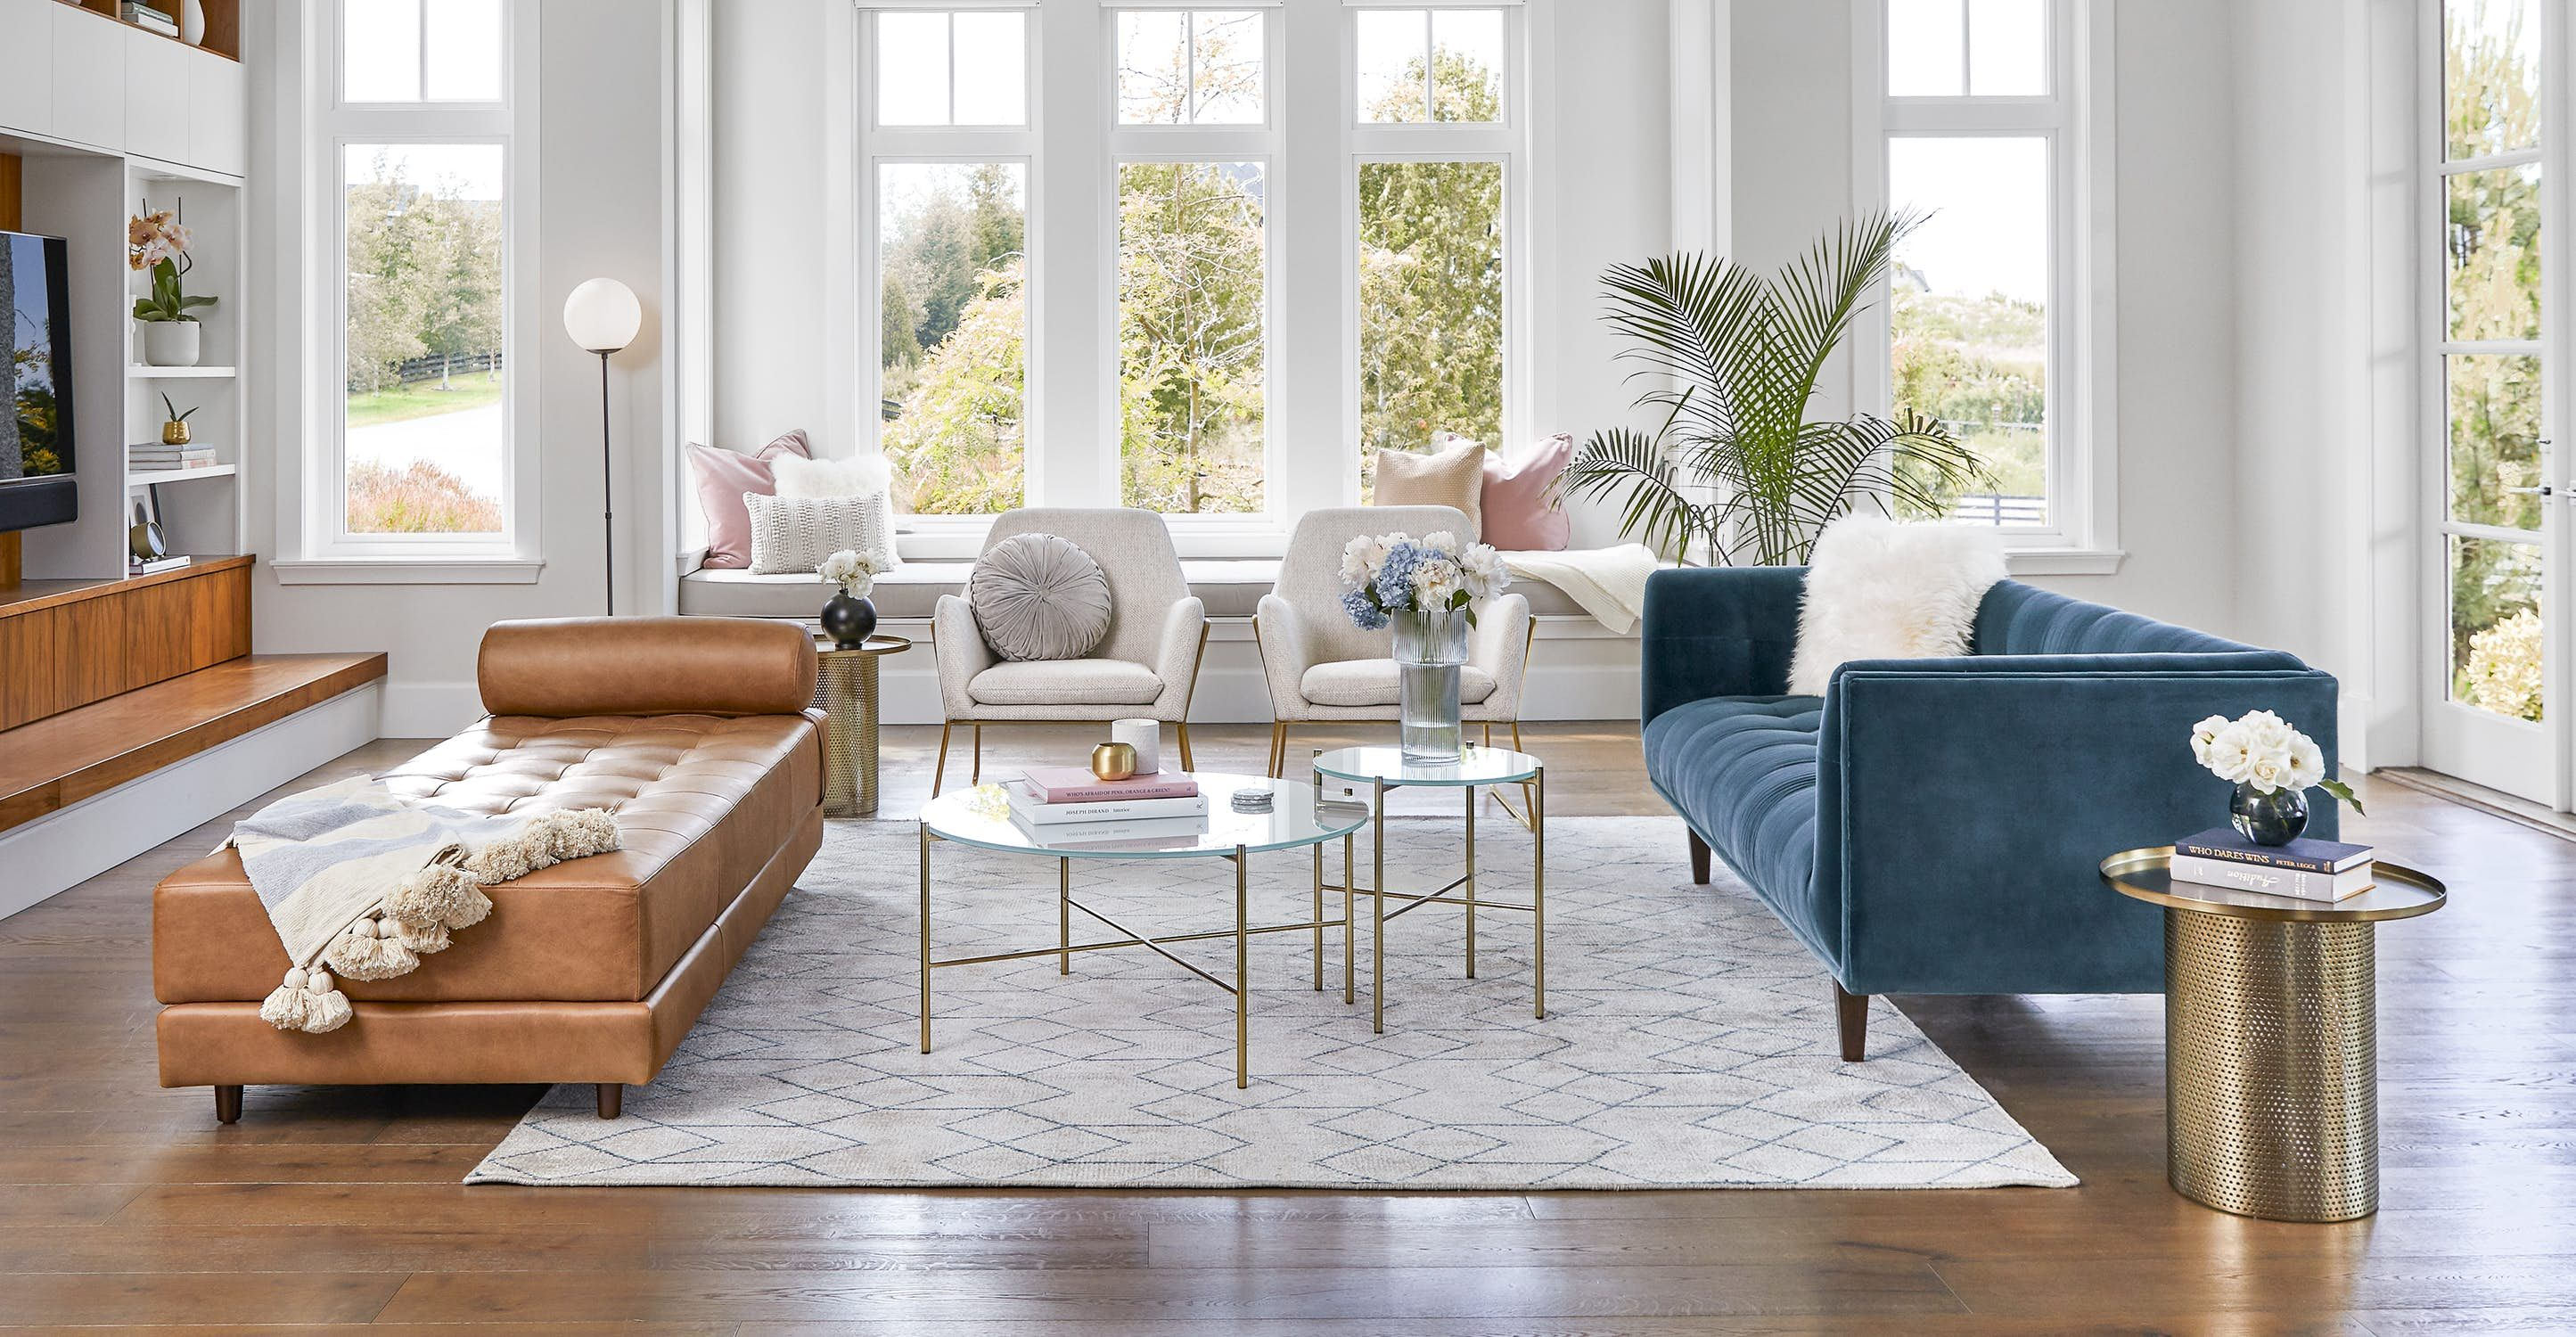 Sven Charme Tan Daybed White Rug Living Room Grey Side Table Rugs In Living Room #tan #rugs #for #living #room